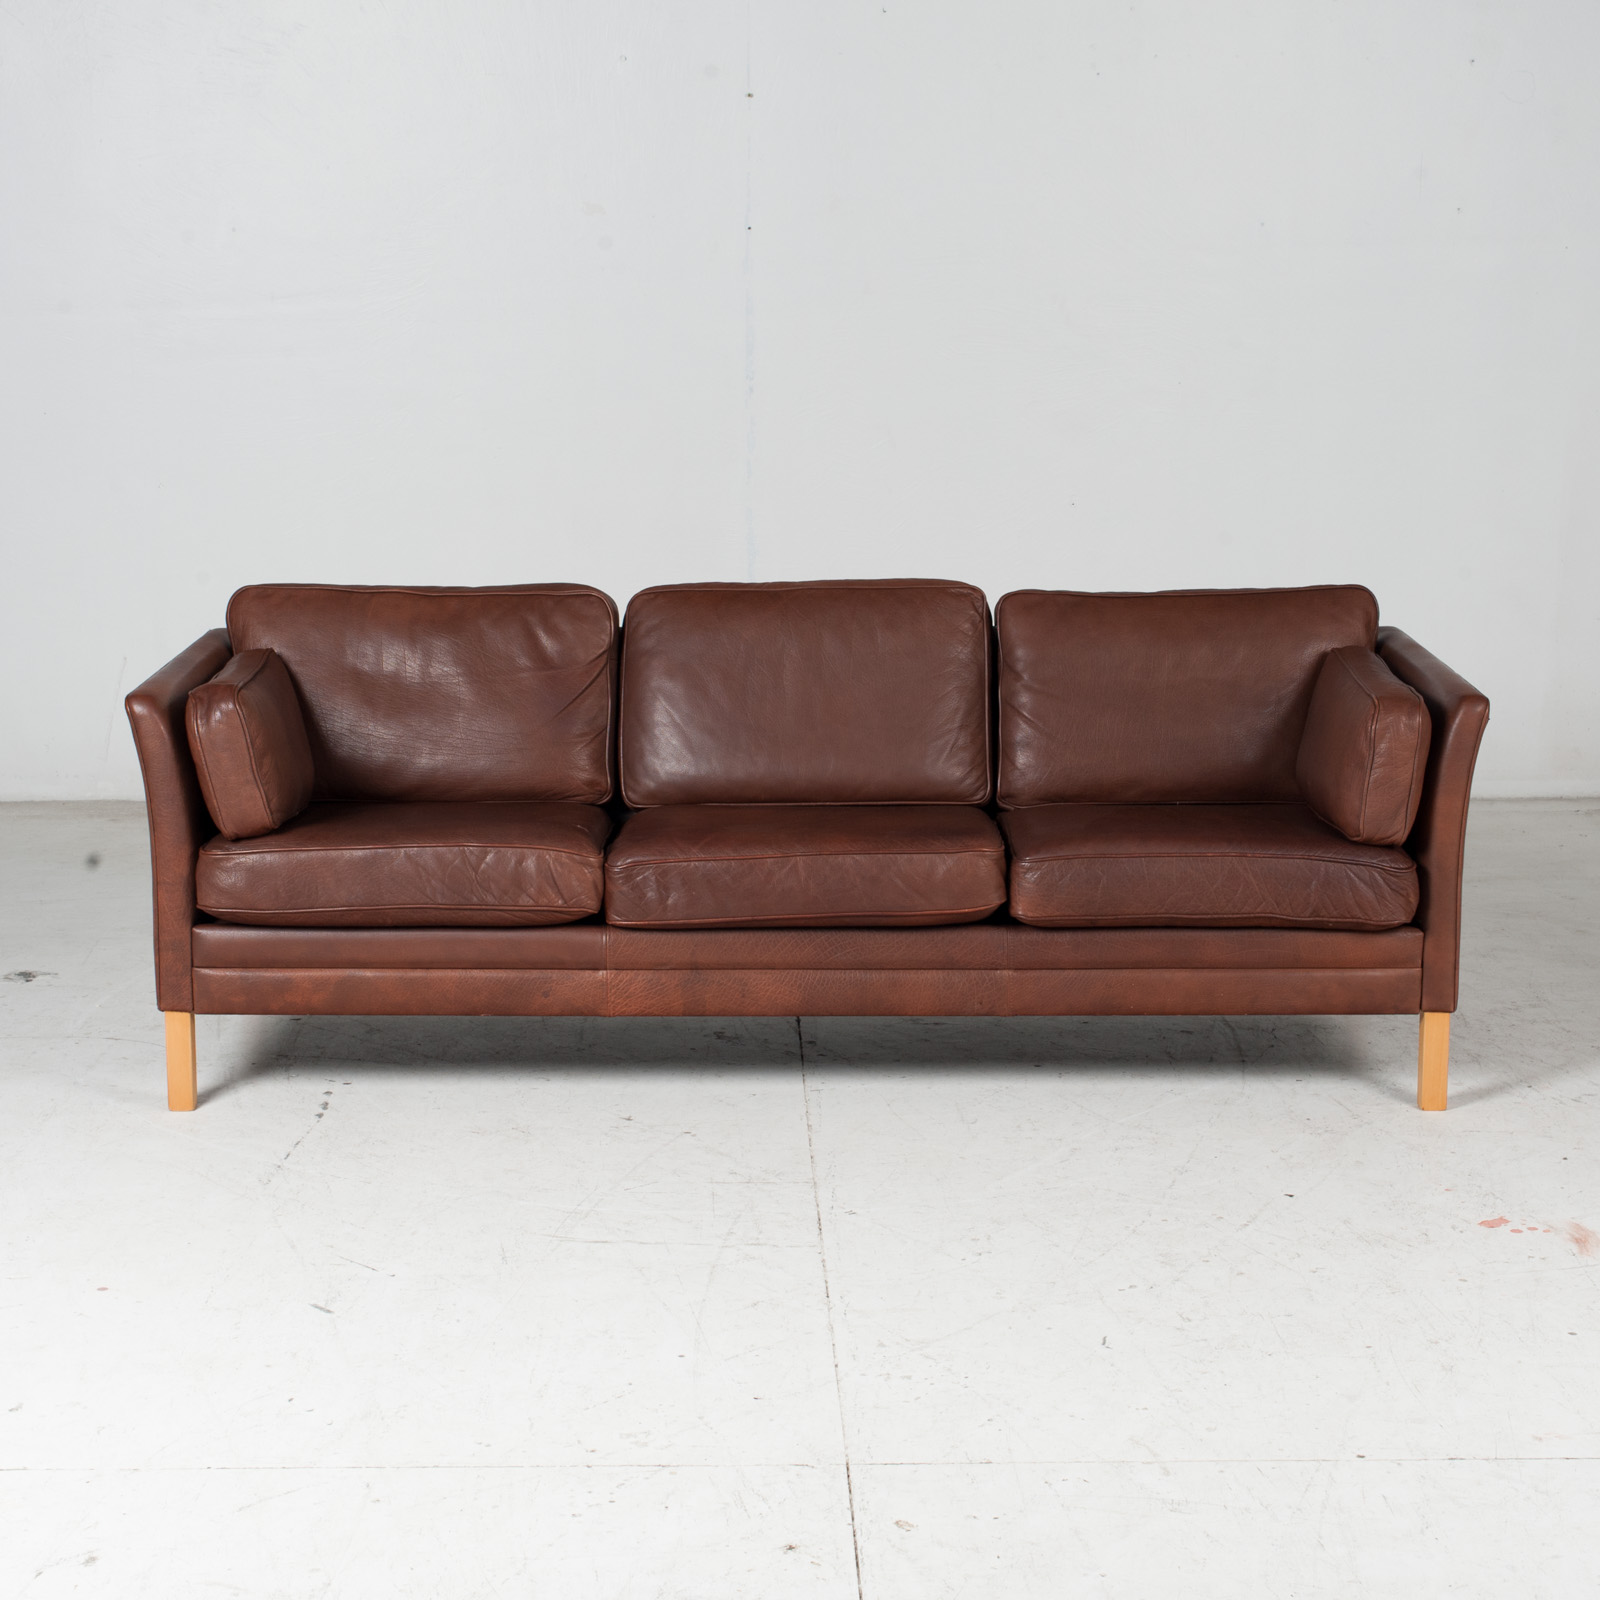 3 Seat Sofa In Brown Leather With Beech Legs, 1960s, Denmark 2